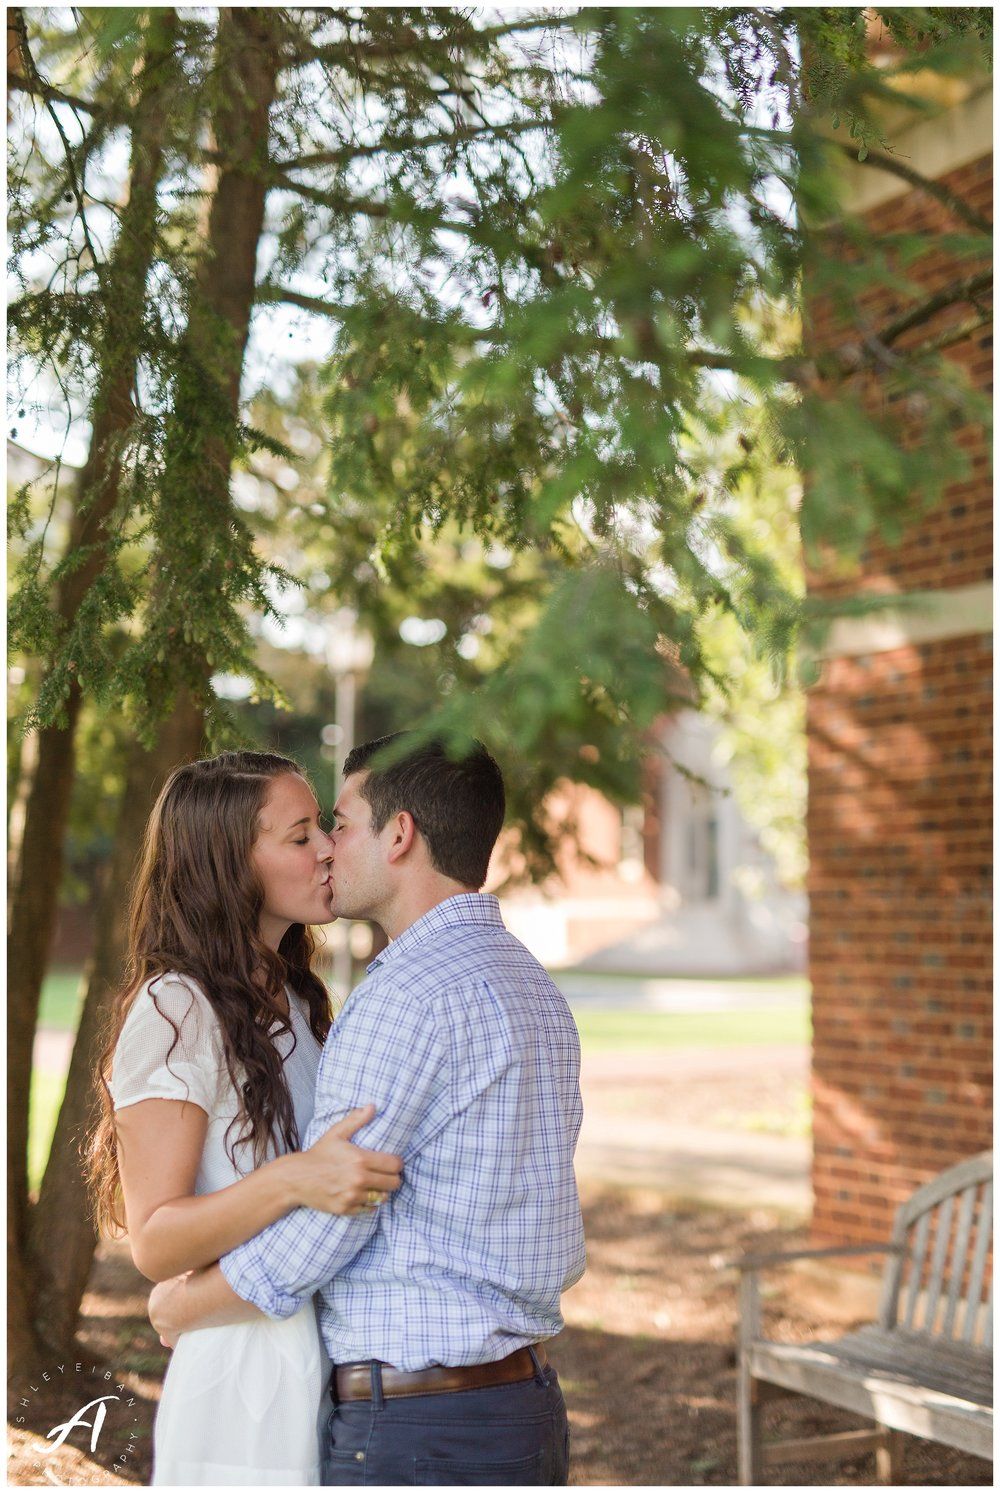 Sweet Briar College Summer Engagement Session || Lynchburg, Virginia Wedding Photographer || Ashley Eiban Photography || www.ashleyeiban.com